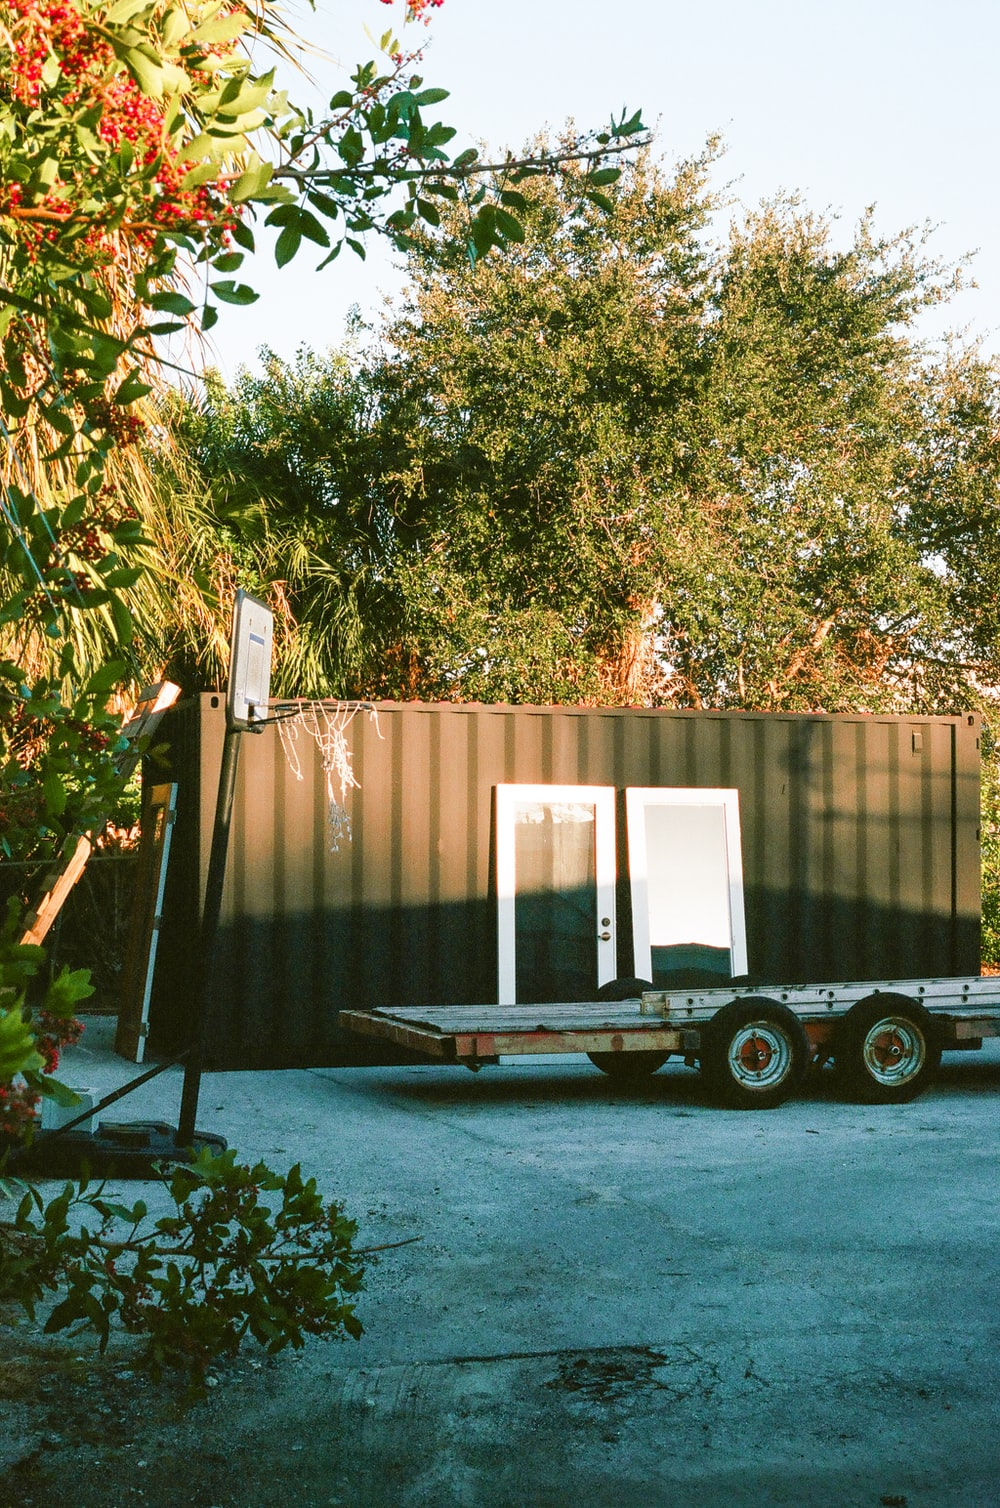 brown and black trailer near green trees during daytime